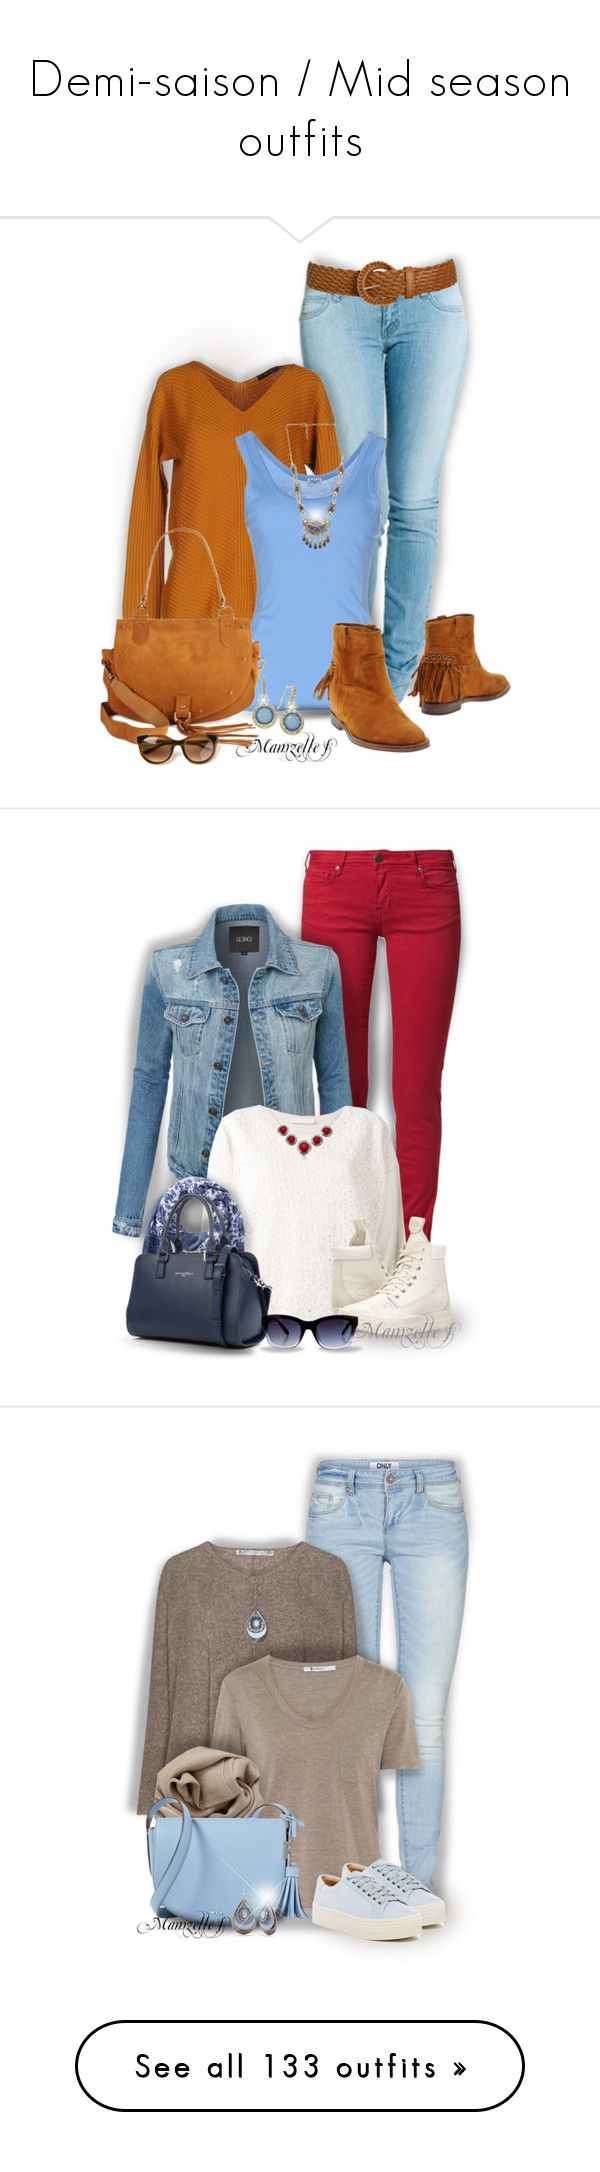 """""""Demi-saison / Mid season outfits"""" by mamzelle-f ❤ liked on Polyvore featuring Dr. Denim, Alpha Studio, Splendid, RIGHI, Wet Seal, See by Chloé, INC International Concepts, Natalie B, Thierry Lasry and CIMARRON"""